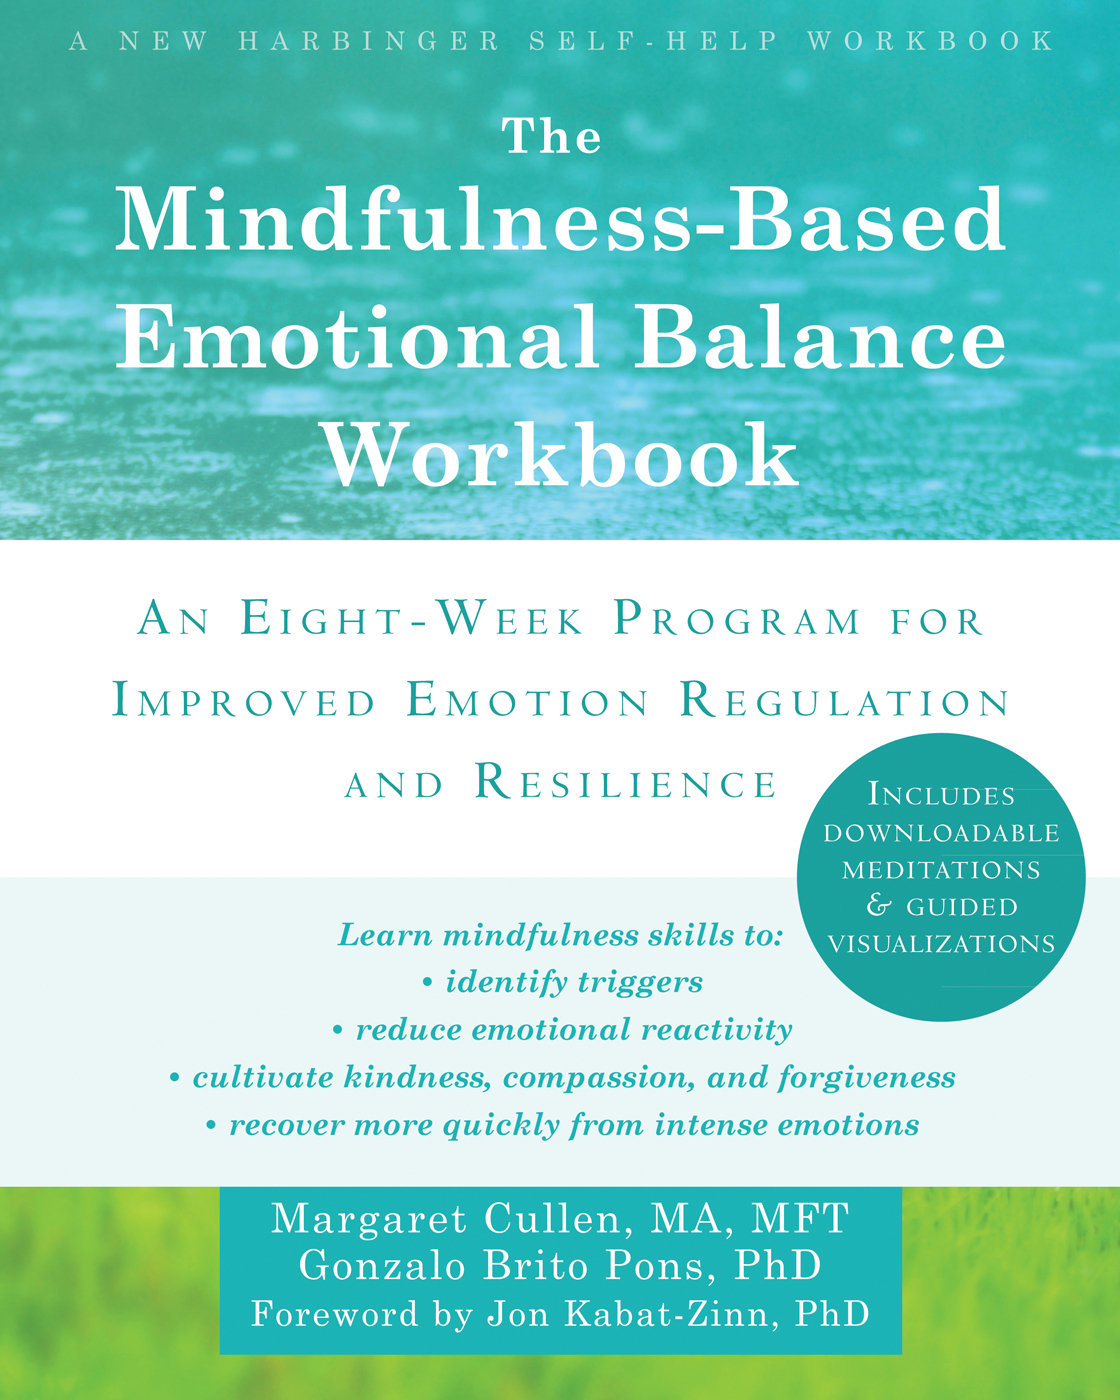 The Mindfulness-Based Emotional Balance Workbook: An Eight-Week Program for Improved Emotion Regulation and Resilience  by  Margaret Cullen